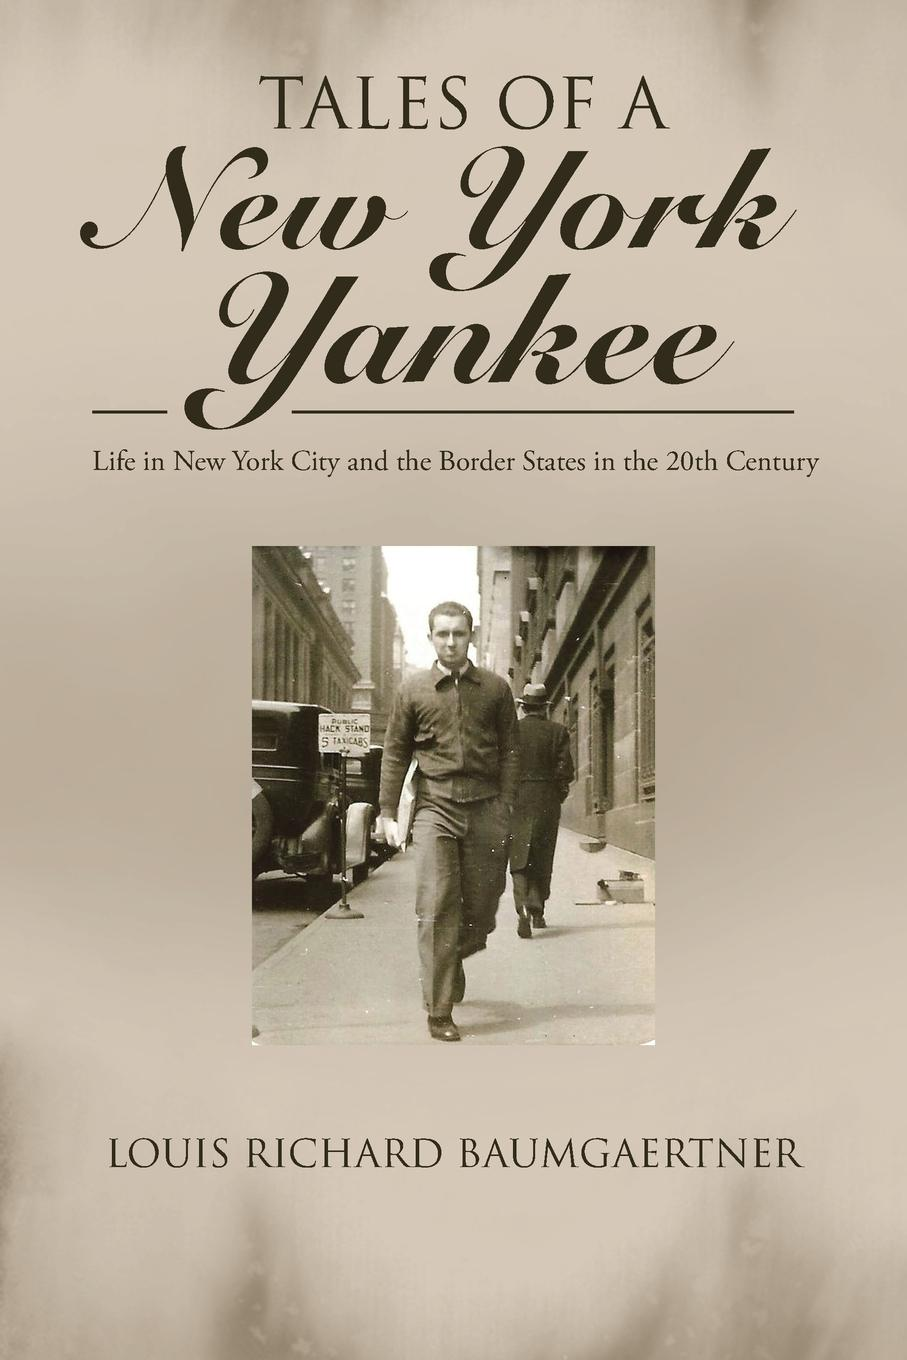 Tales of a New York Yankee. Life in New York City and the Border States in the 20th Century